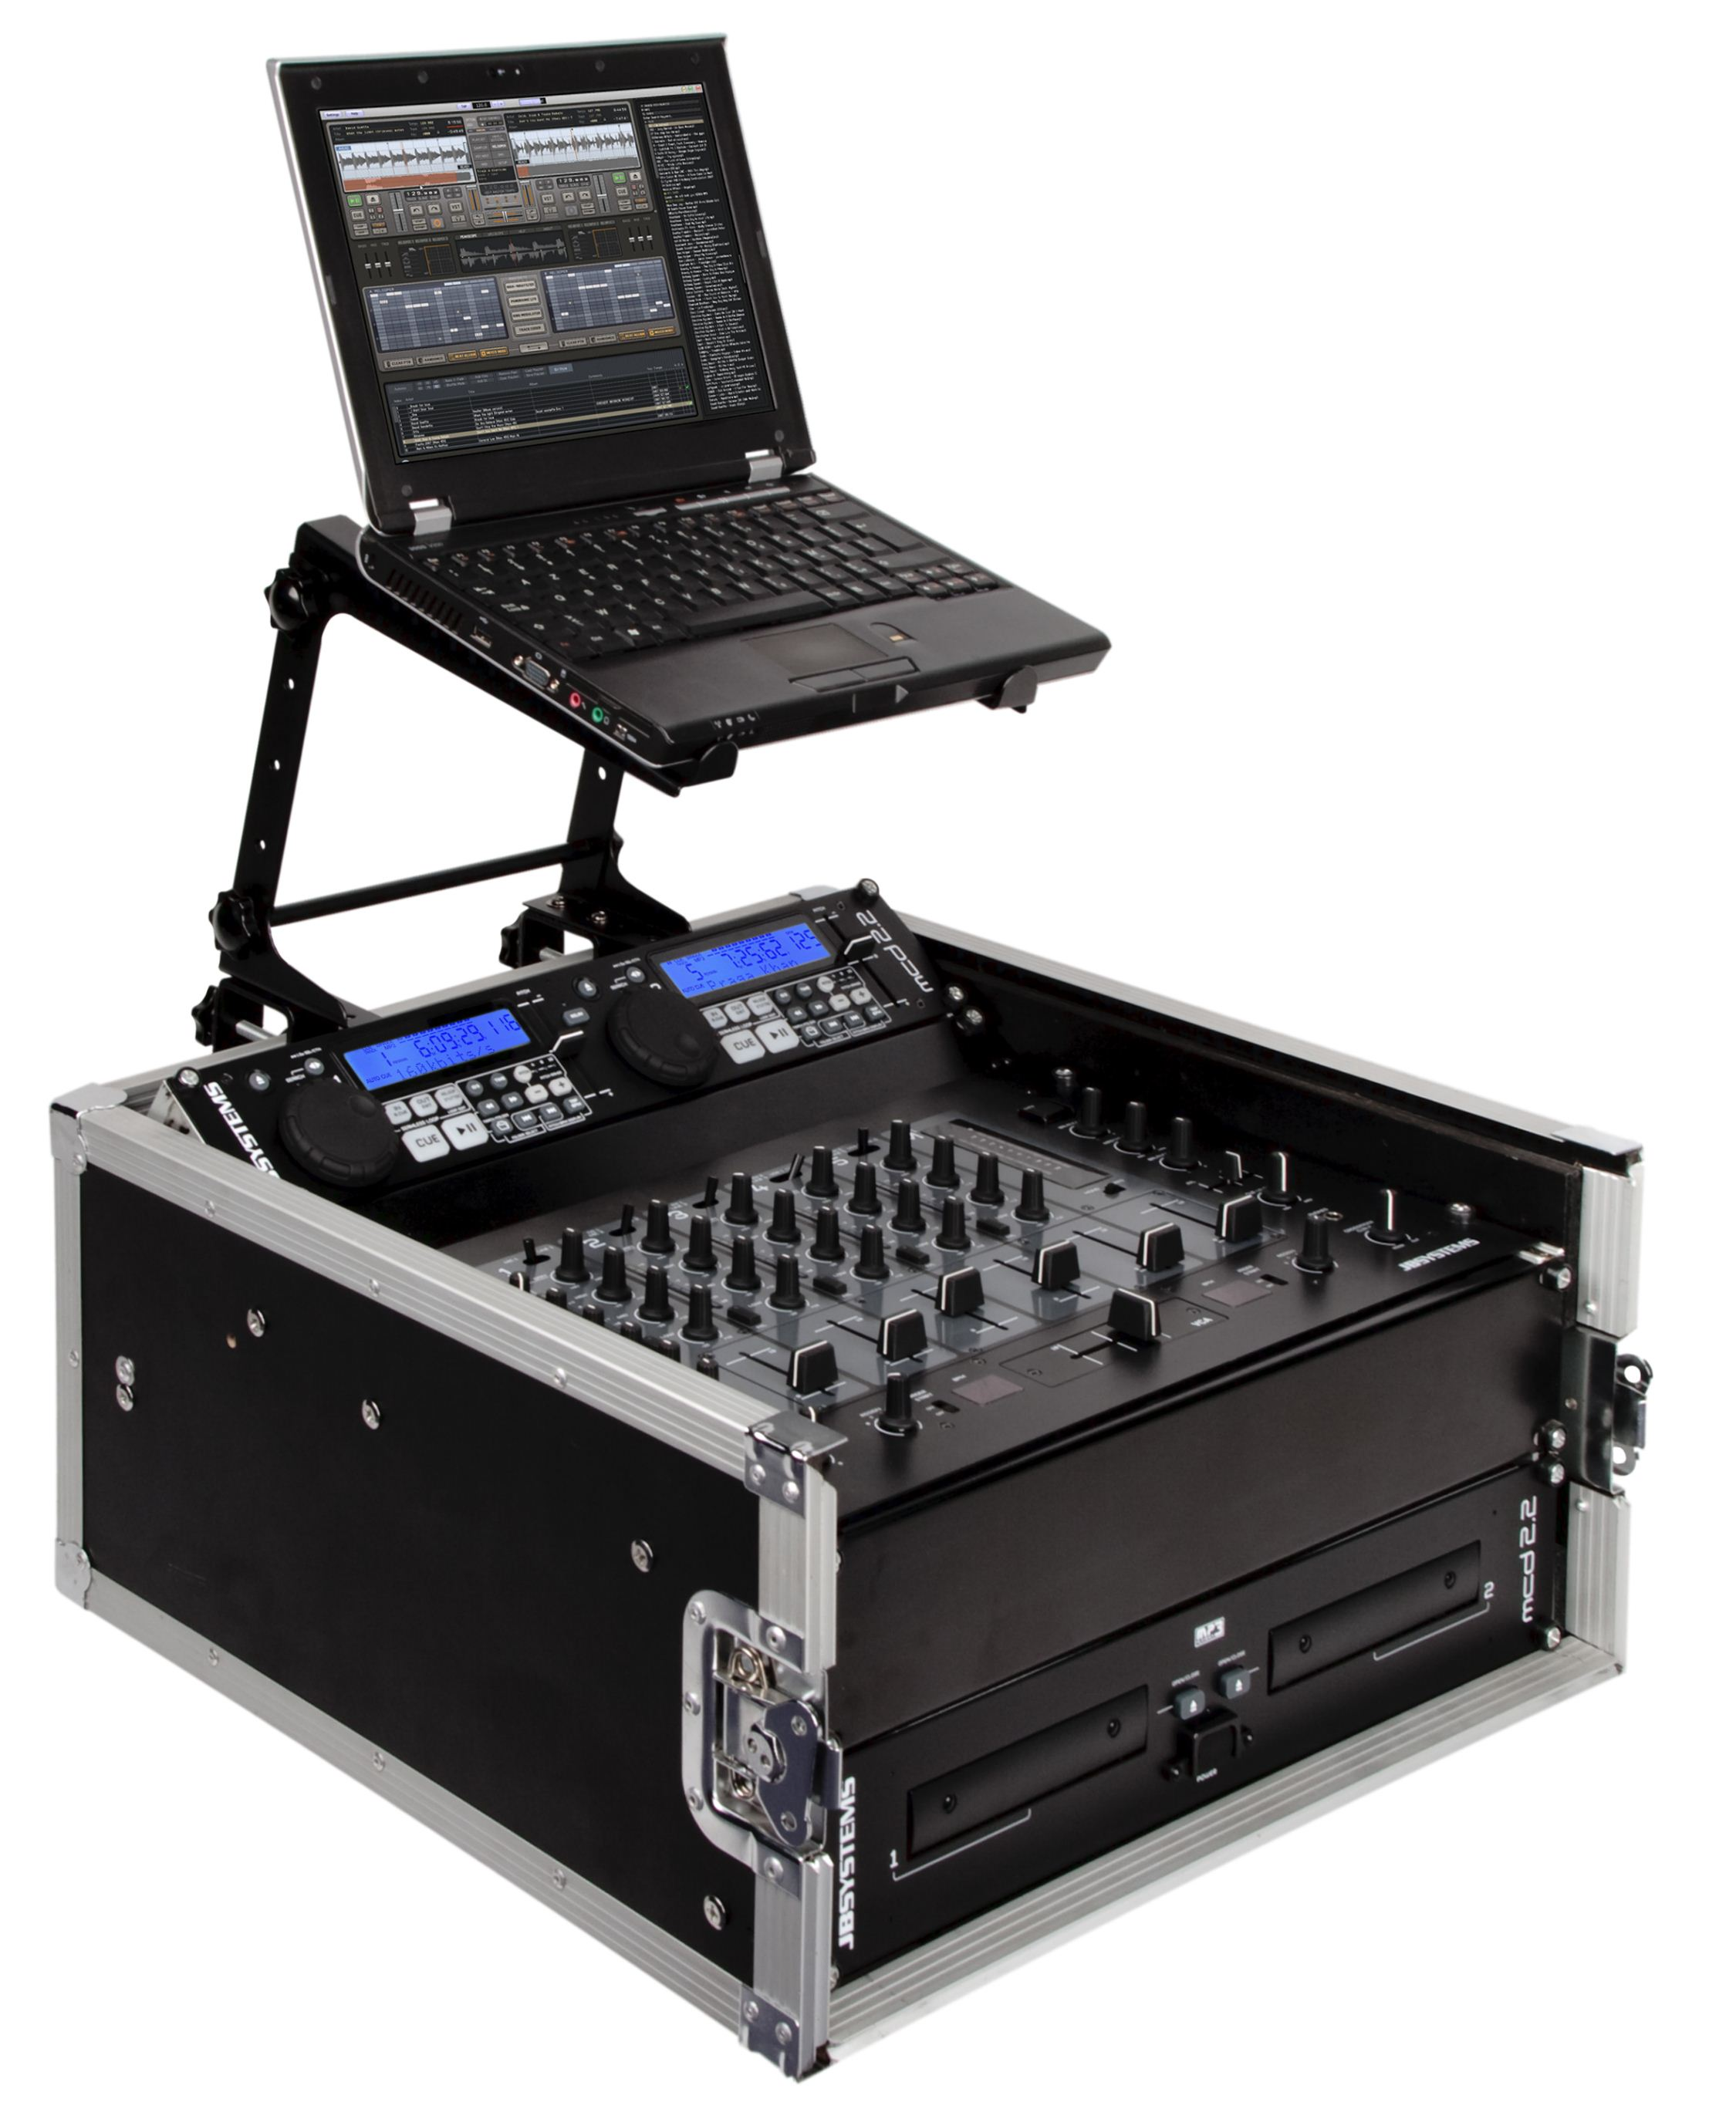 Jb Systems Laptop Stand Flightcases Accessories